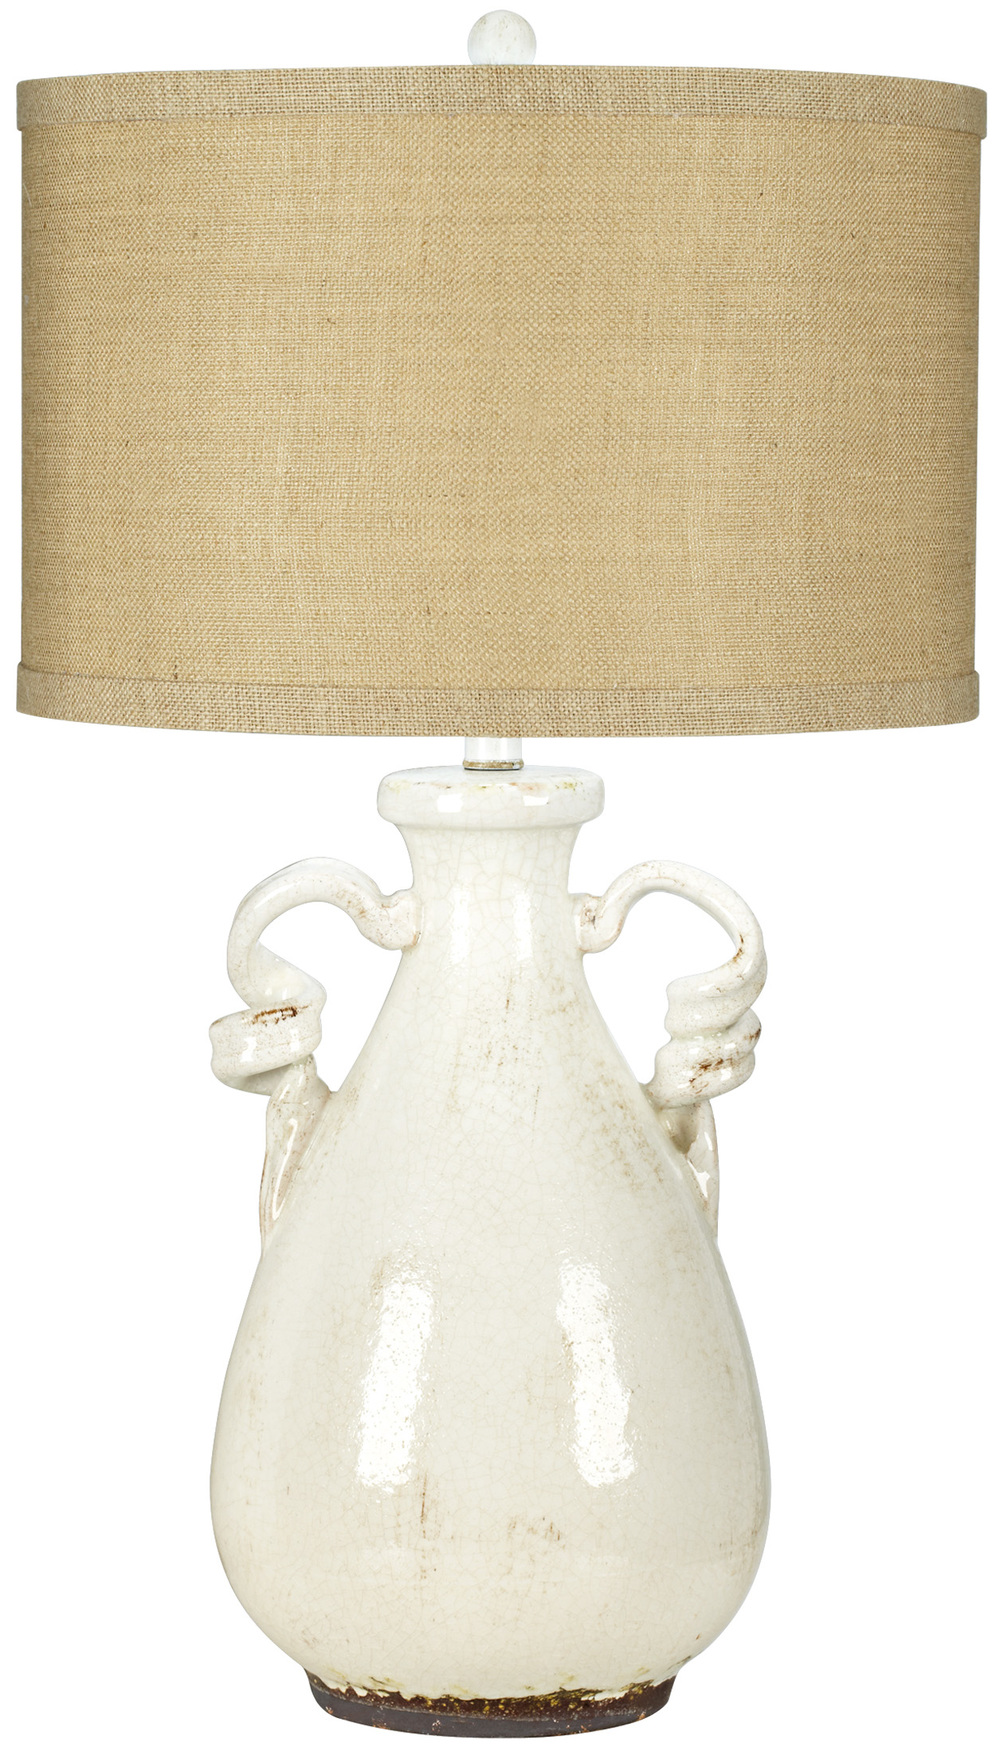 Pacific Coast Lighting - Urban Pottery Jar Table Lamp